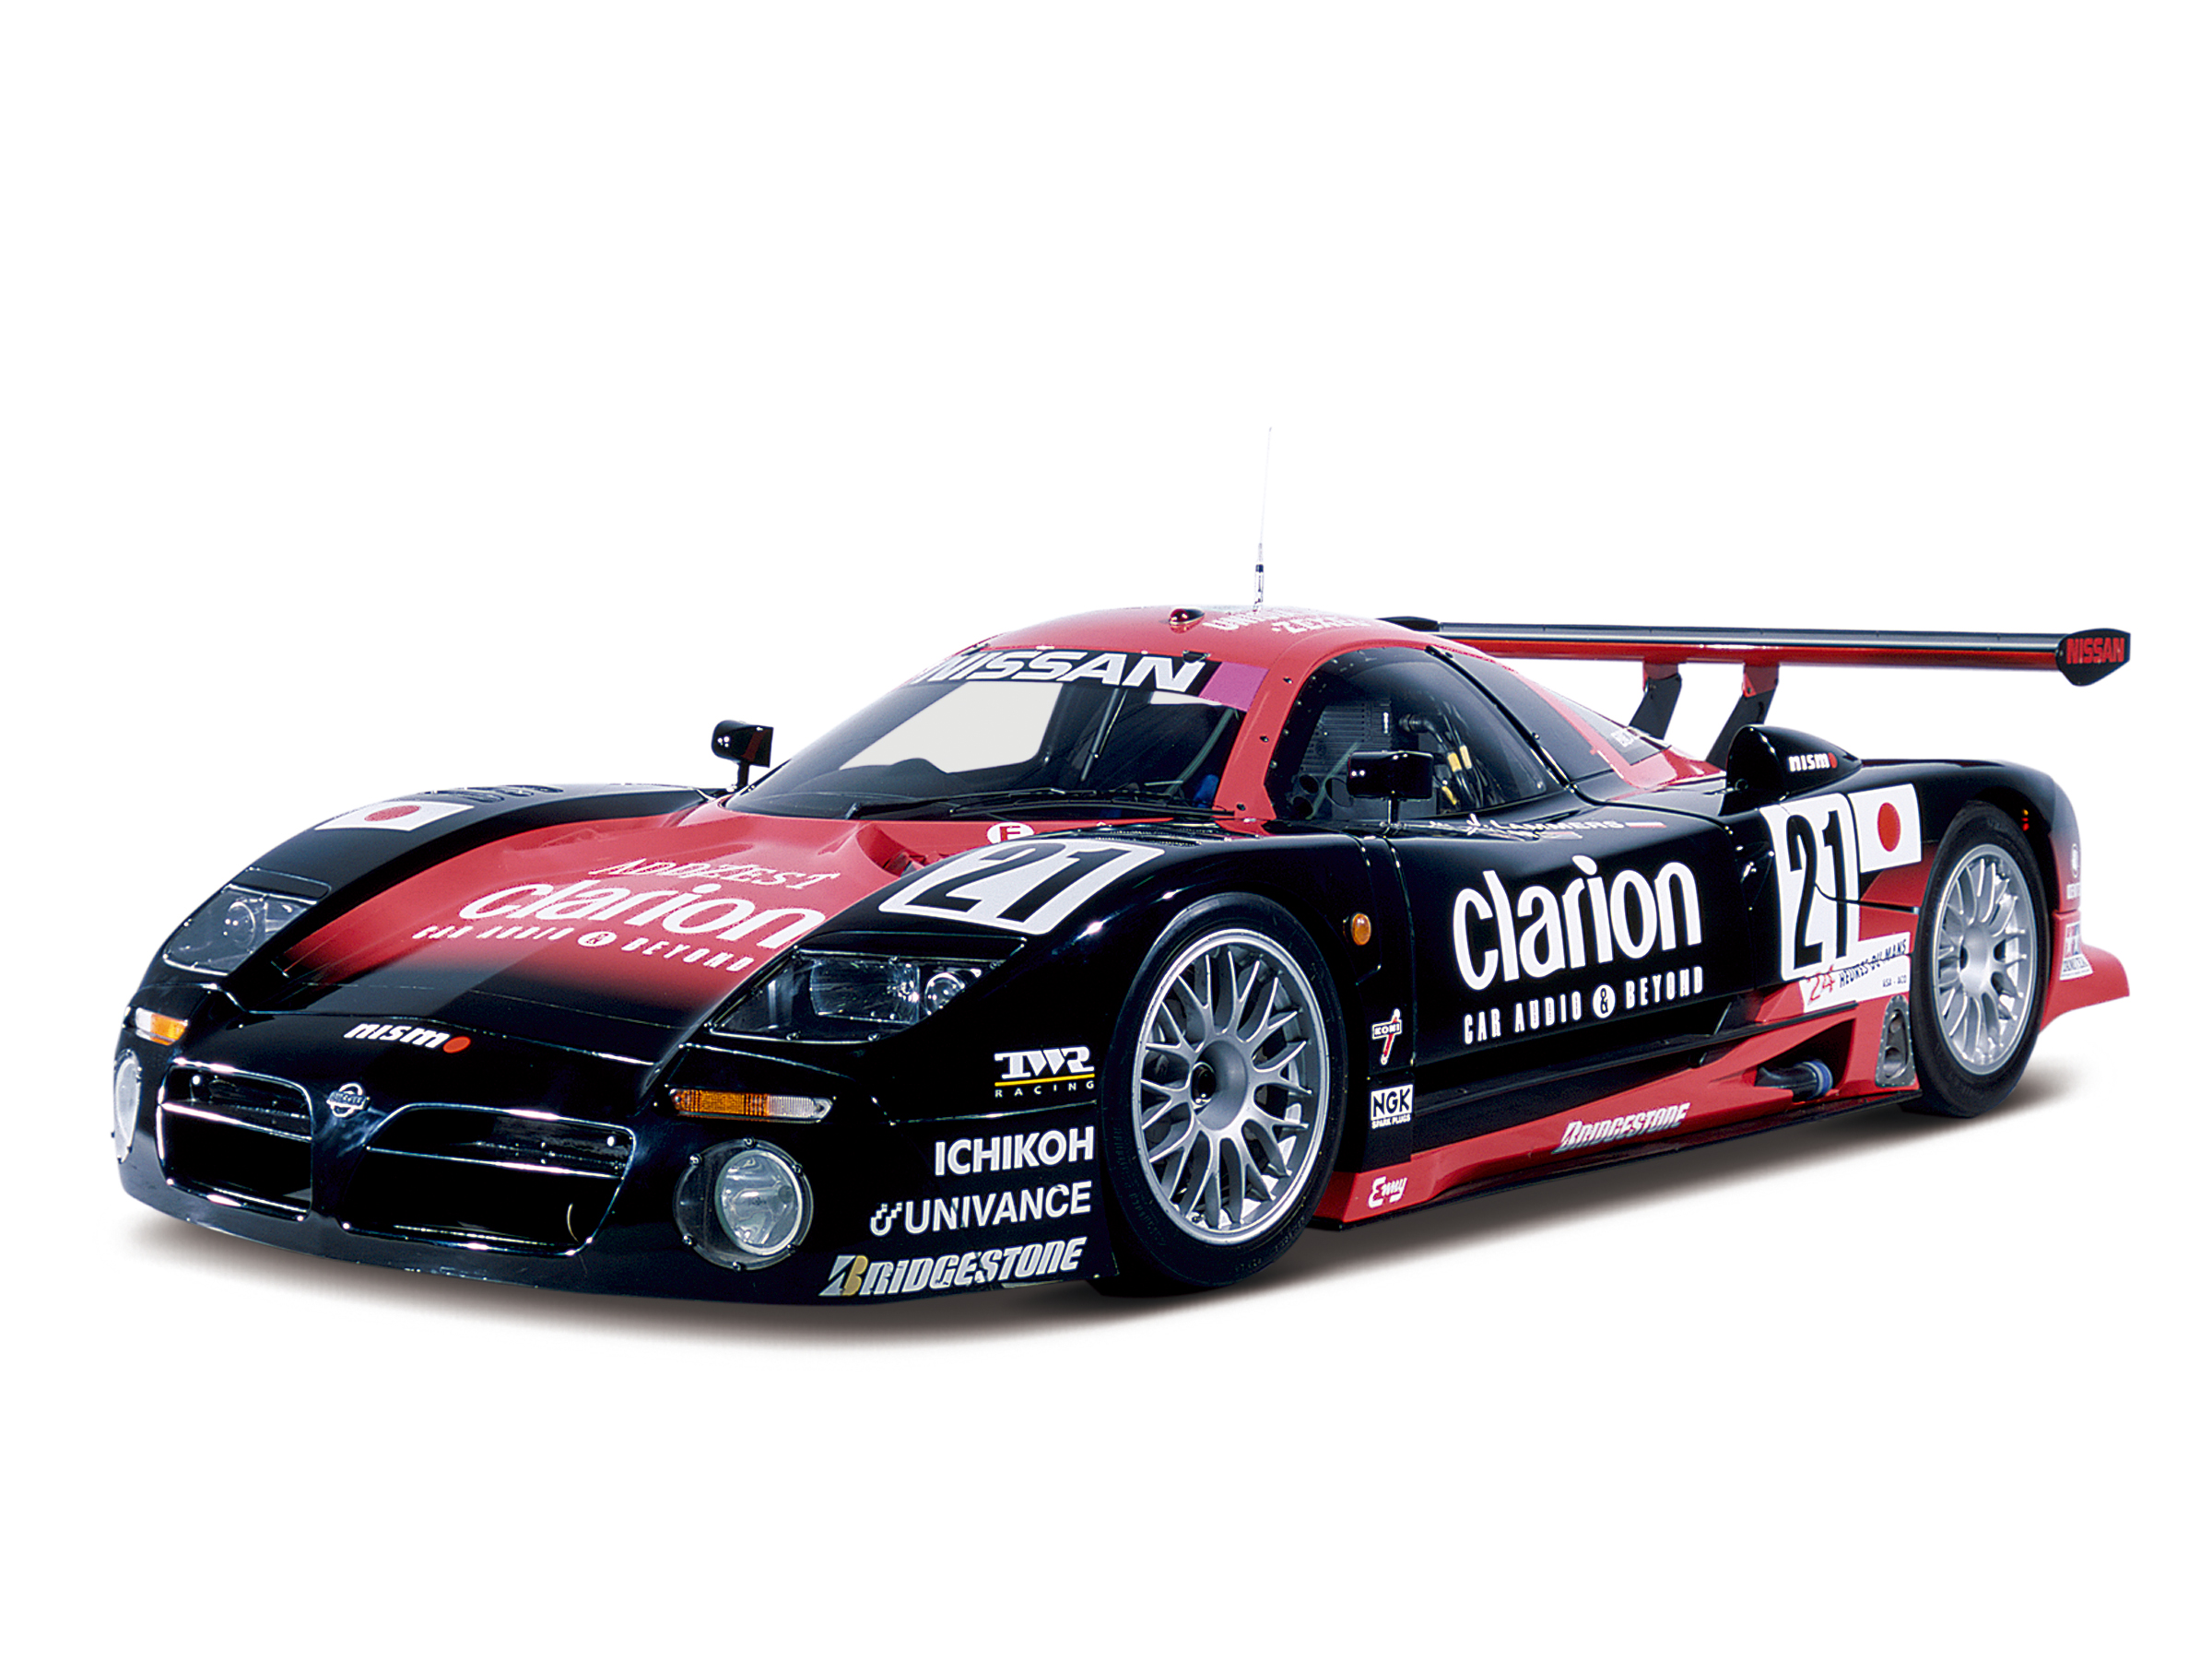 Nissan Heritage Collection Nissan R390 Gt1